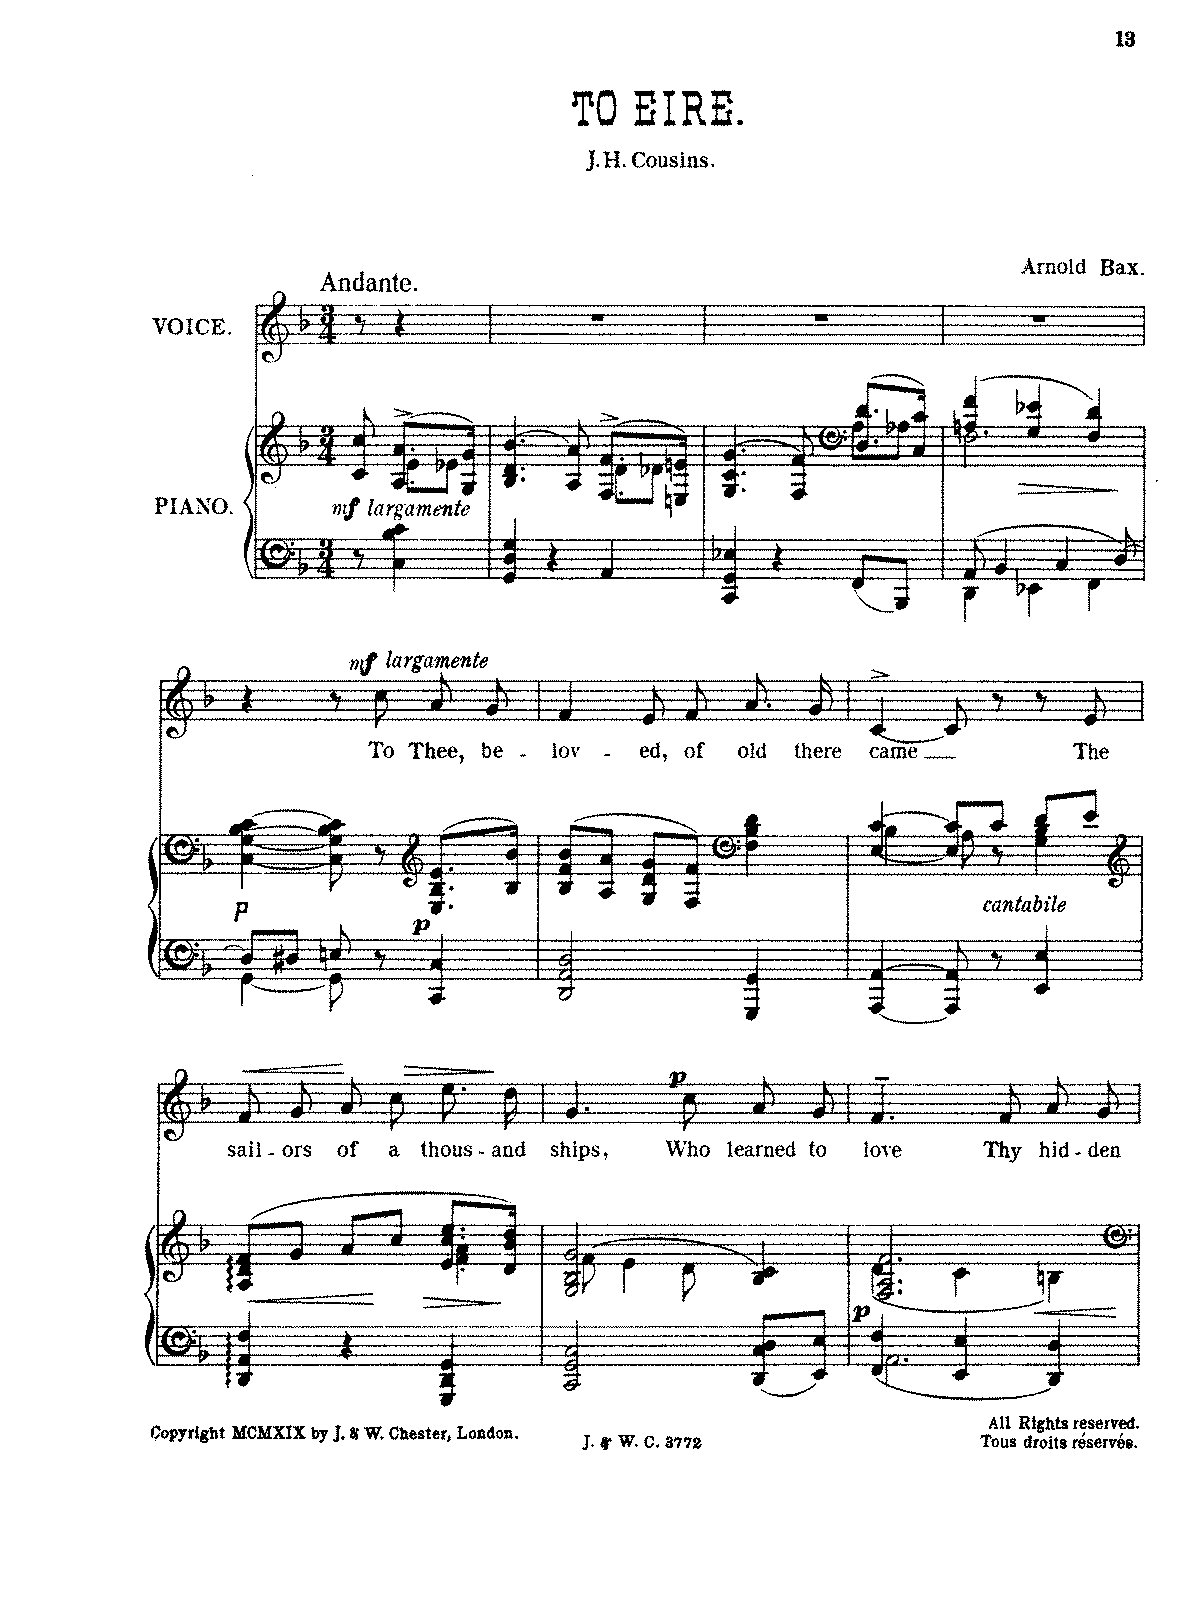 PMLP46209-Bax - To Eire (voice and piano).pdf